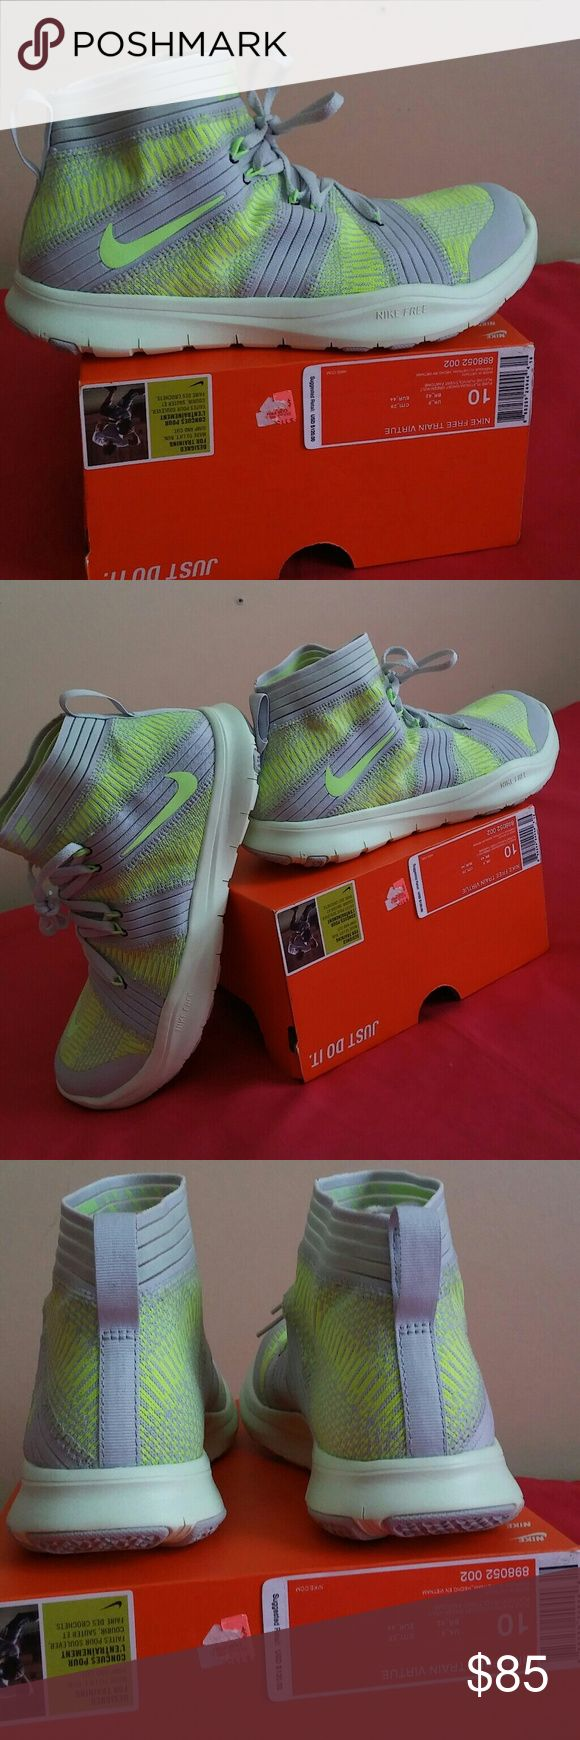 New Nike Free TR Virtue Ghost Volt Grn Size 10 Men Shoes is BRAND NEW IN ORIGINAL BOX..Top of box is ripped off. Purchased on sale from Nike for $90...Shoes is guaranteed to be 100% authentic nike merchandise. For MEN SIZE 10. Nike Shoes Sneakers